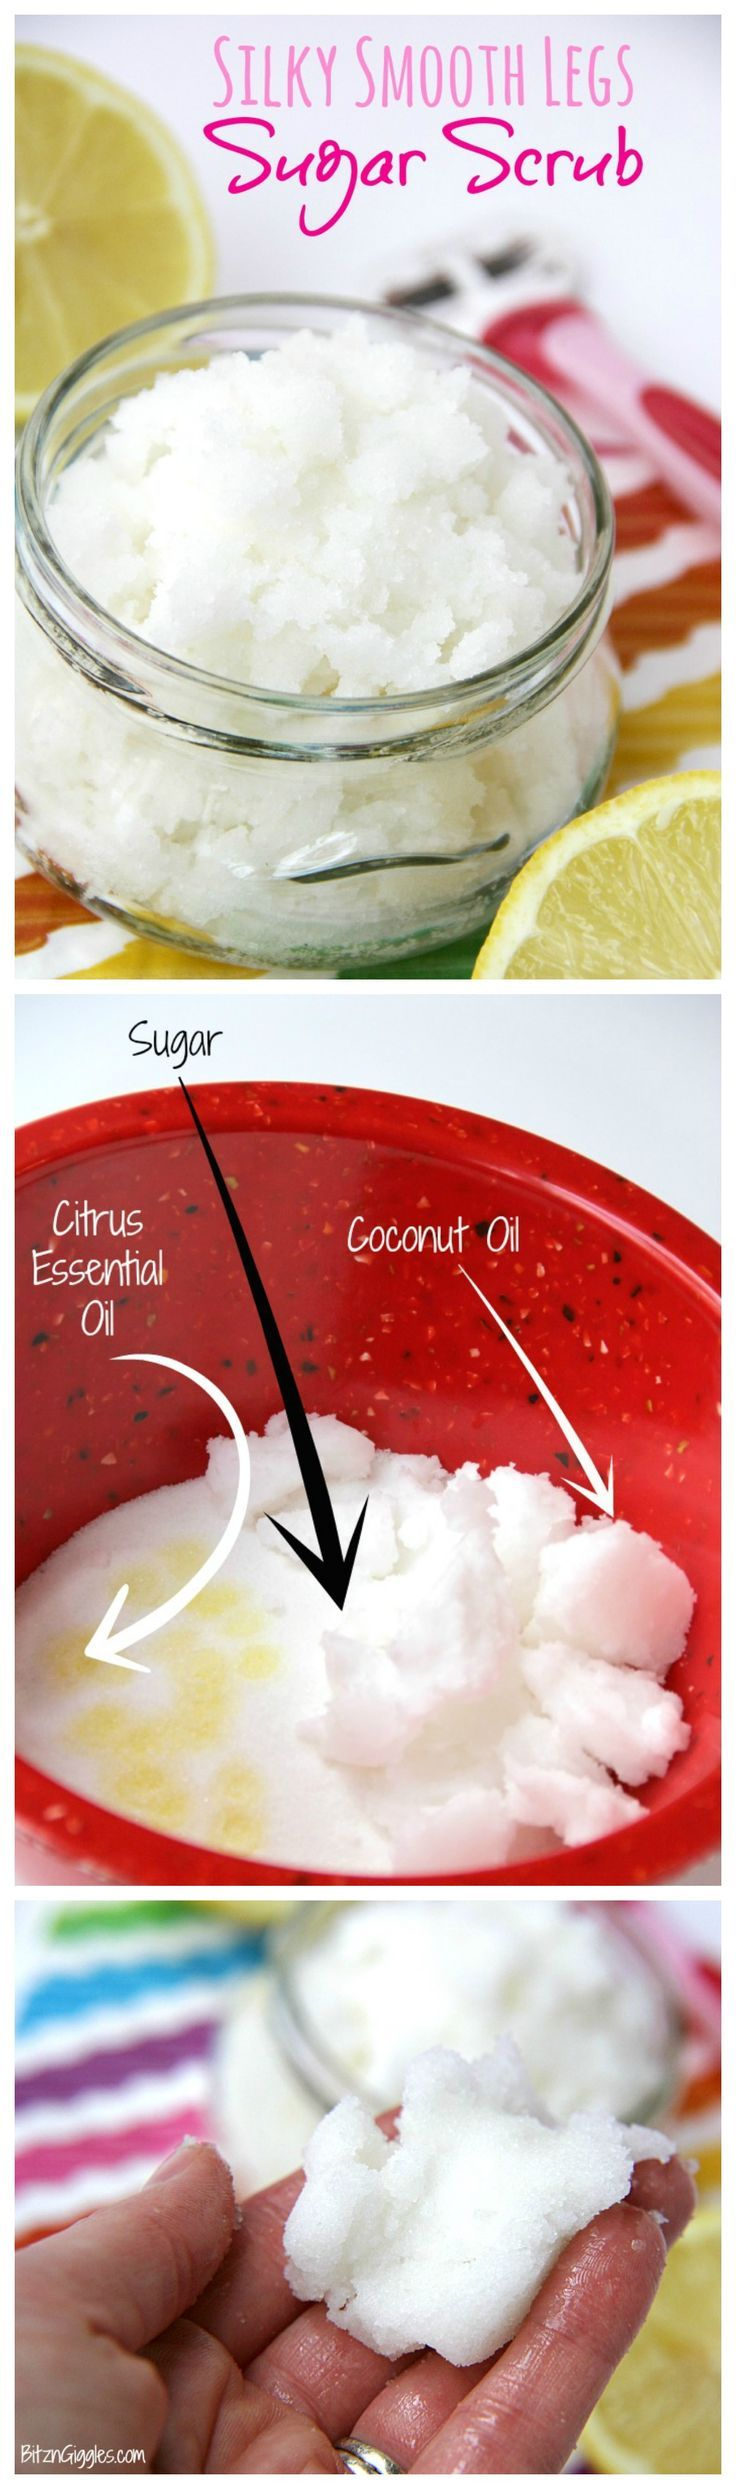 Silky Smooth Legs Sugar Scrub – Apply a small amount of this scrub before shaving for silky, smooth legs year round!